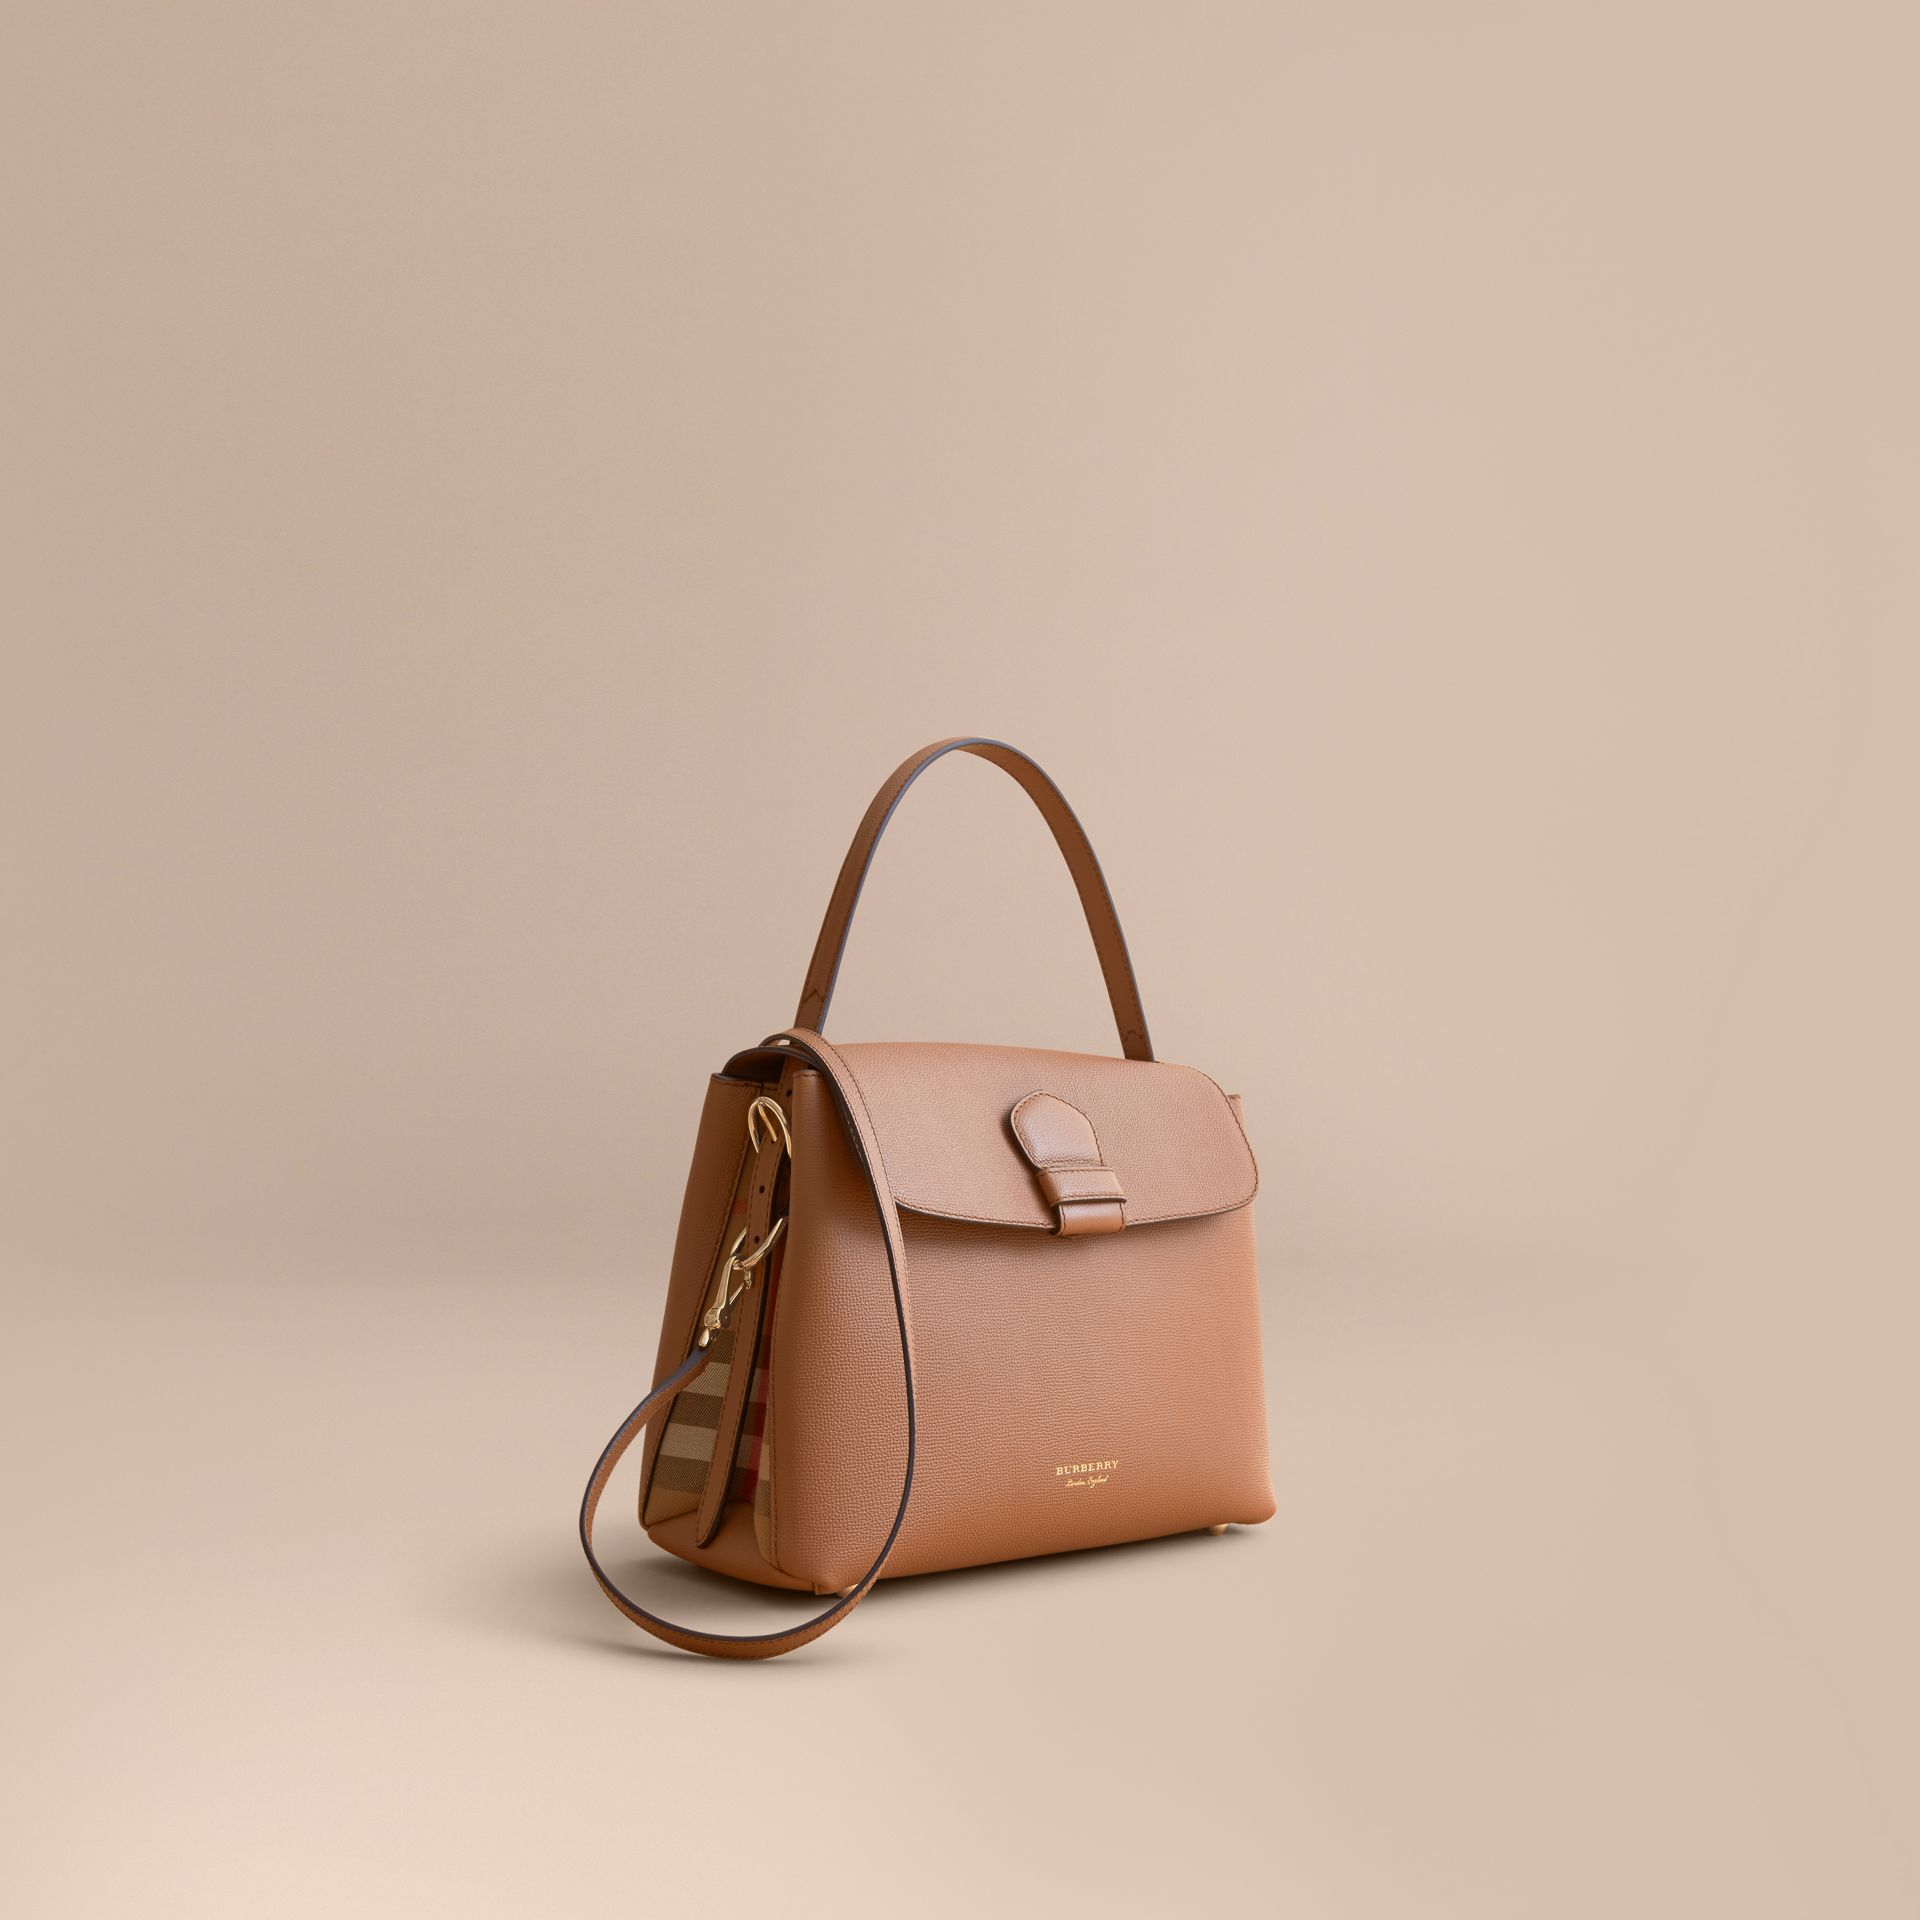 Medium Grainy Leather and House Check Tote Bag in Dark Sand - Women | Burberry - gallery image 1